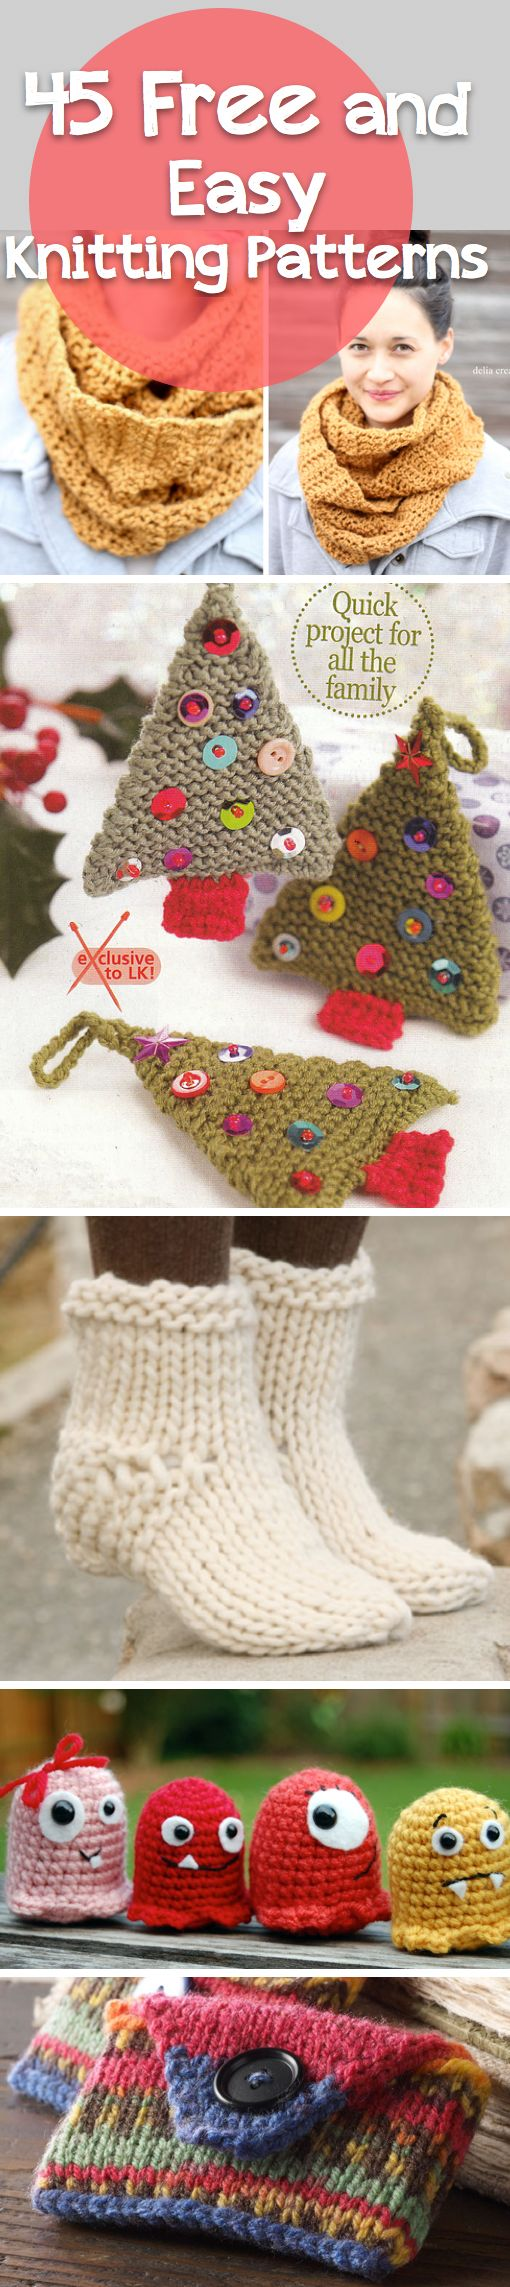 How to Knit – 45 Free and Easy Knitting Patterns. I want to knit those socks